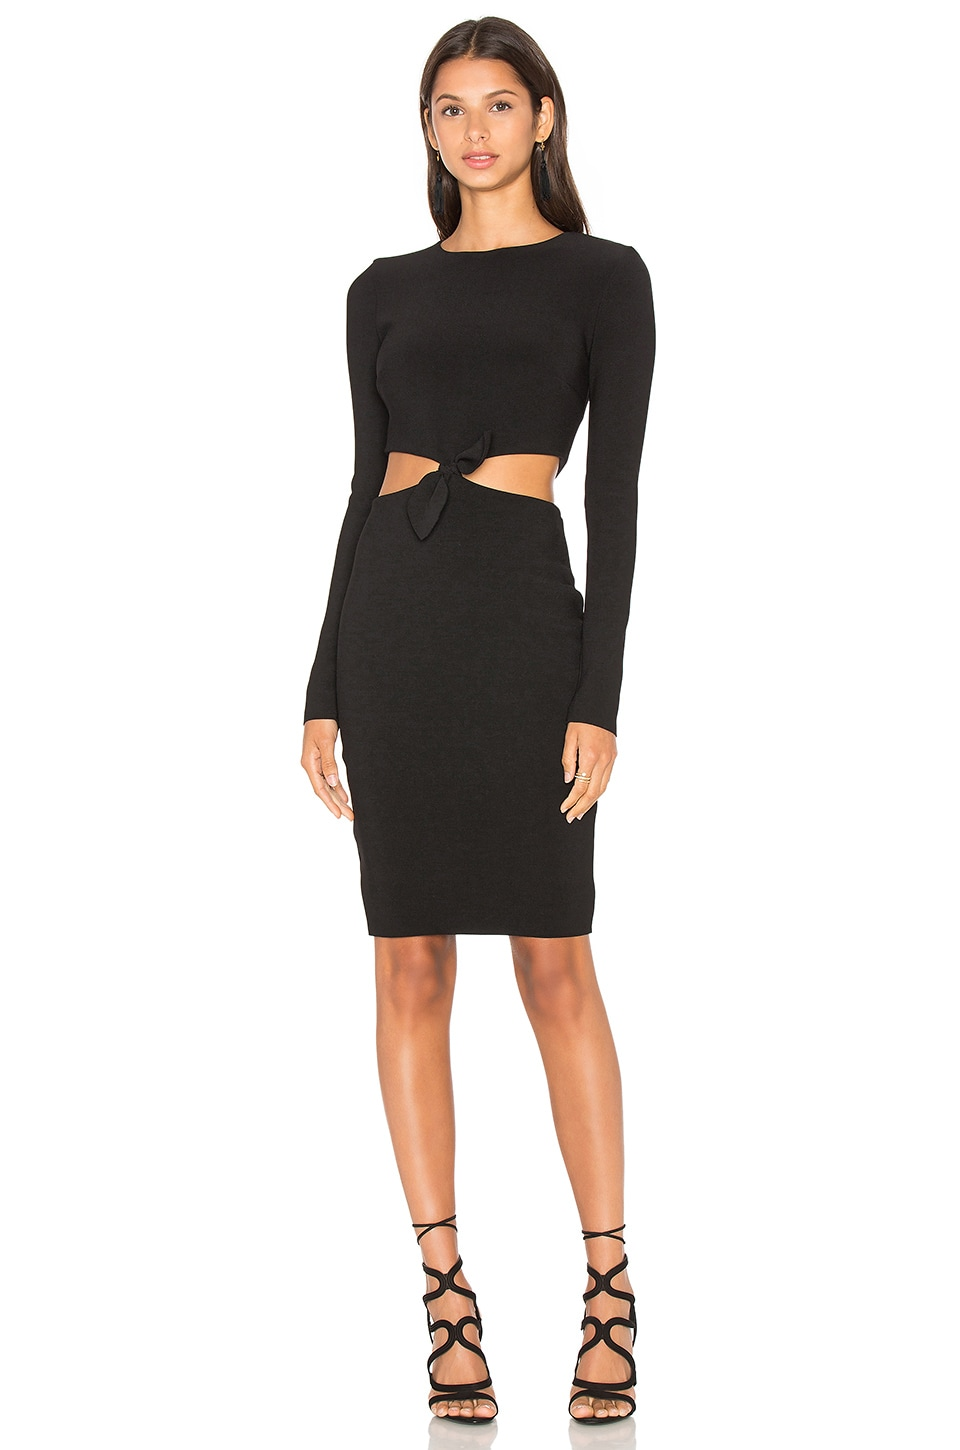 Lucienne Long Sleeve Dress by Bec&Bridge